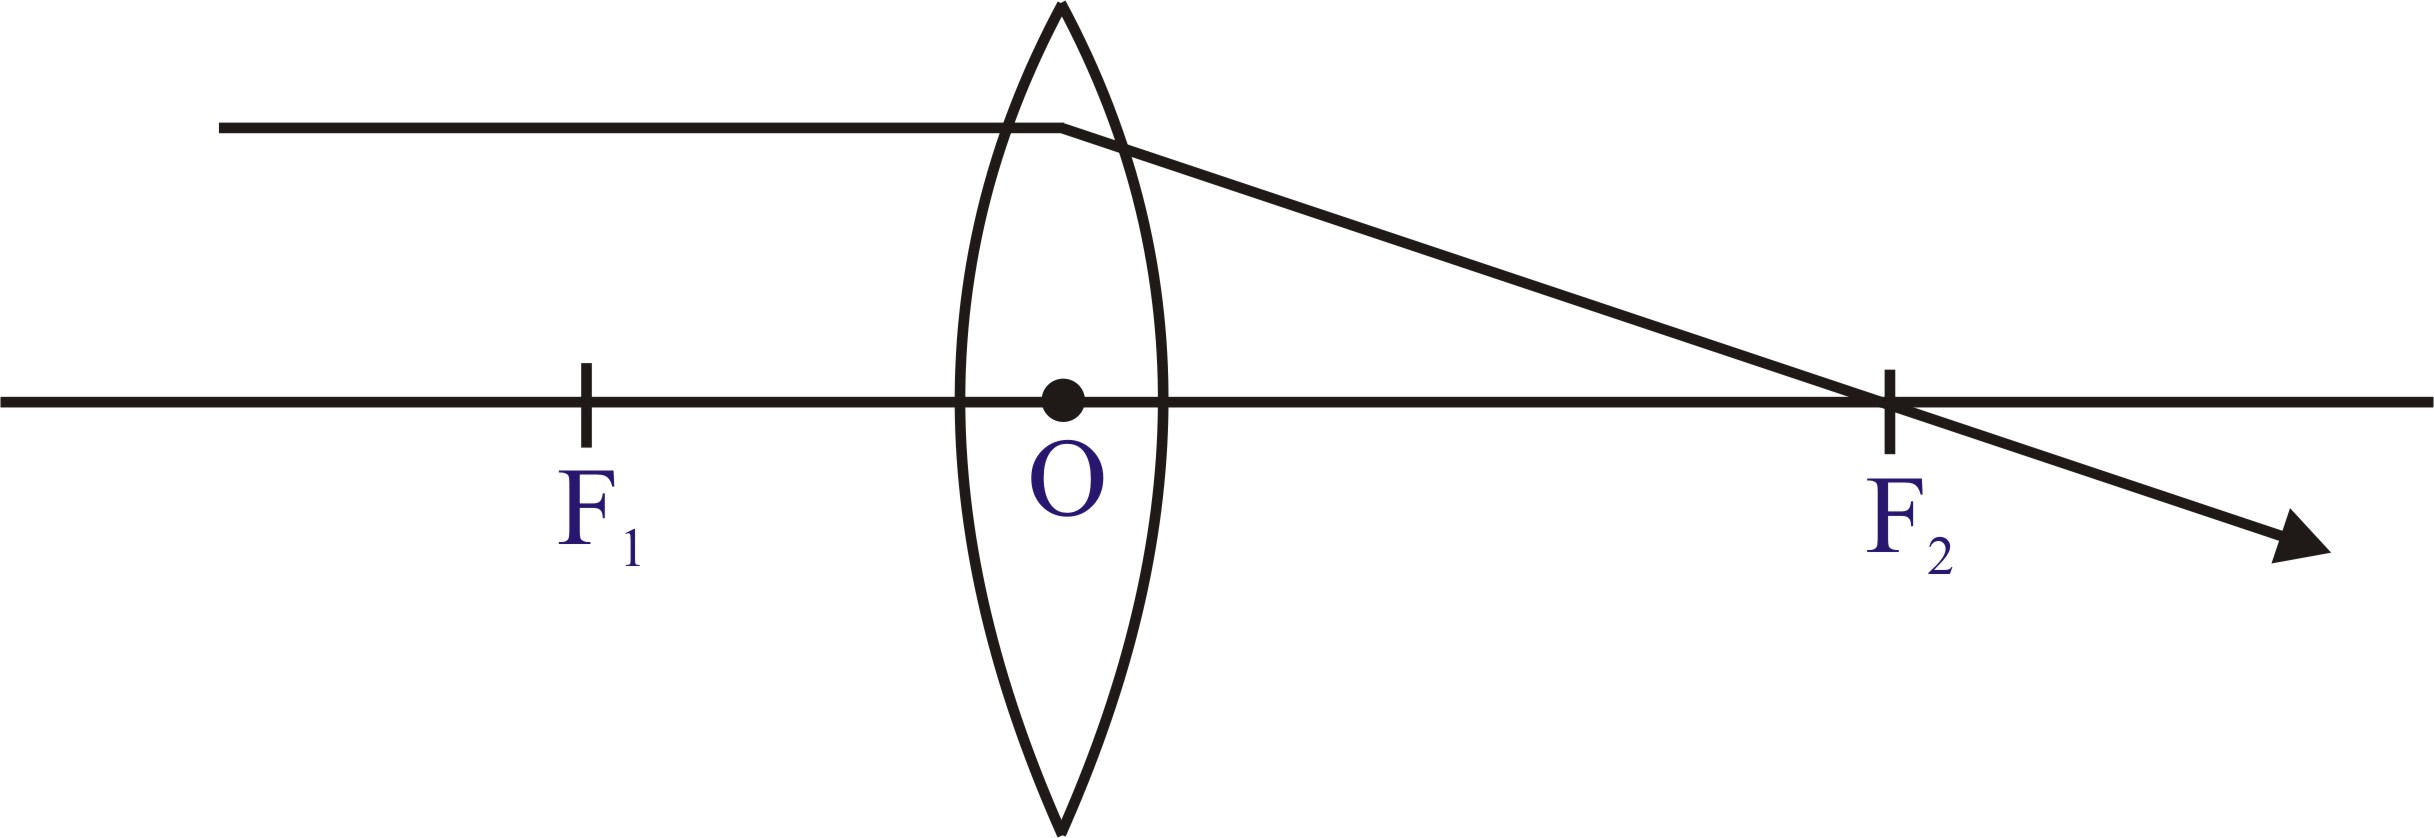 Cbse class 10 class x physics light reflection and refraction the principal axis is an imaginary line passing through the optical centre and the two centre of curvature of the lens rays parallel to the principal axis pooptronica